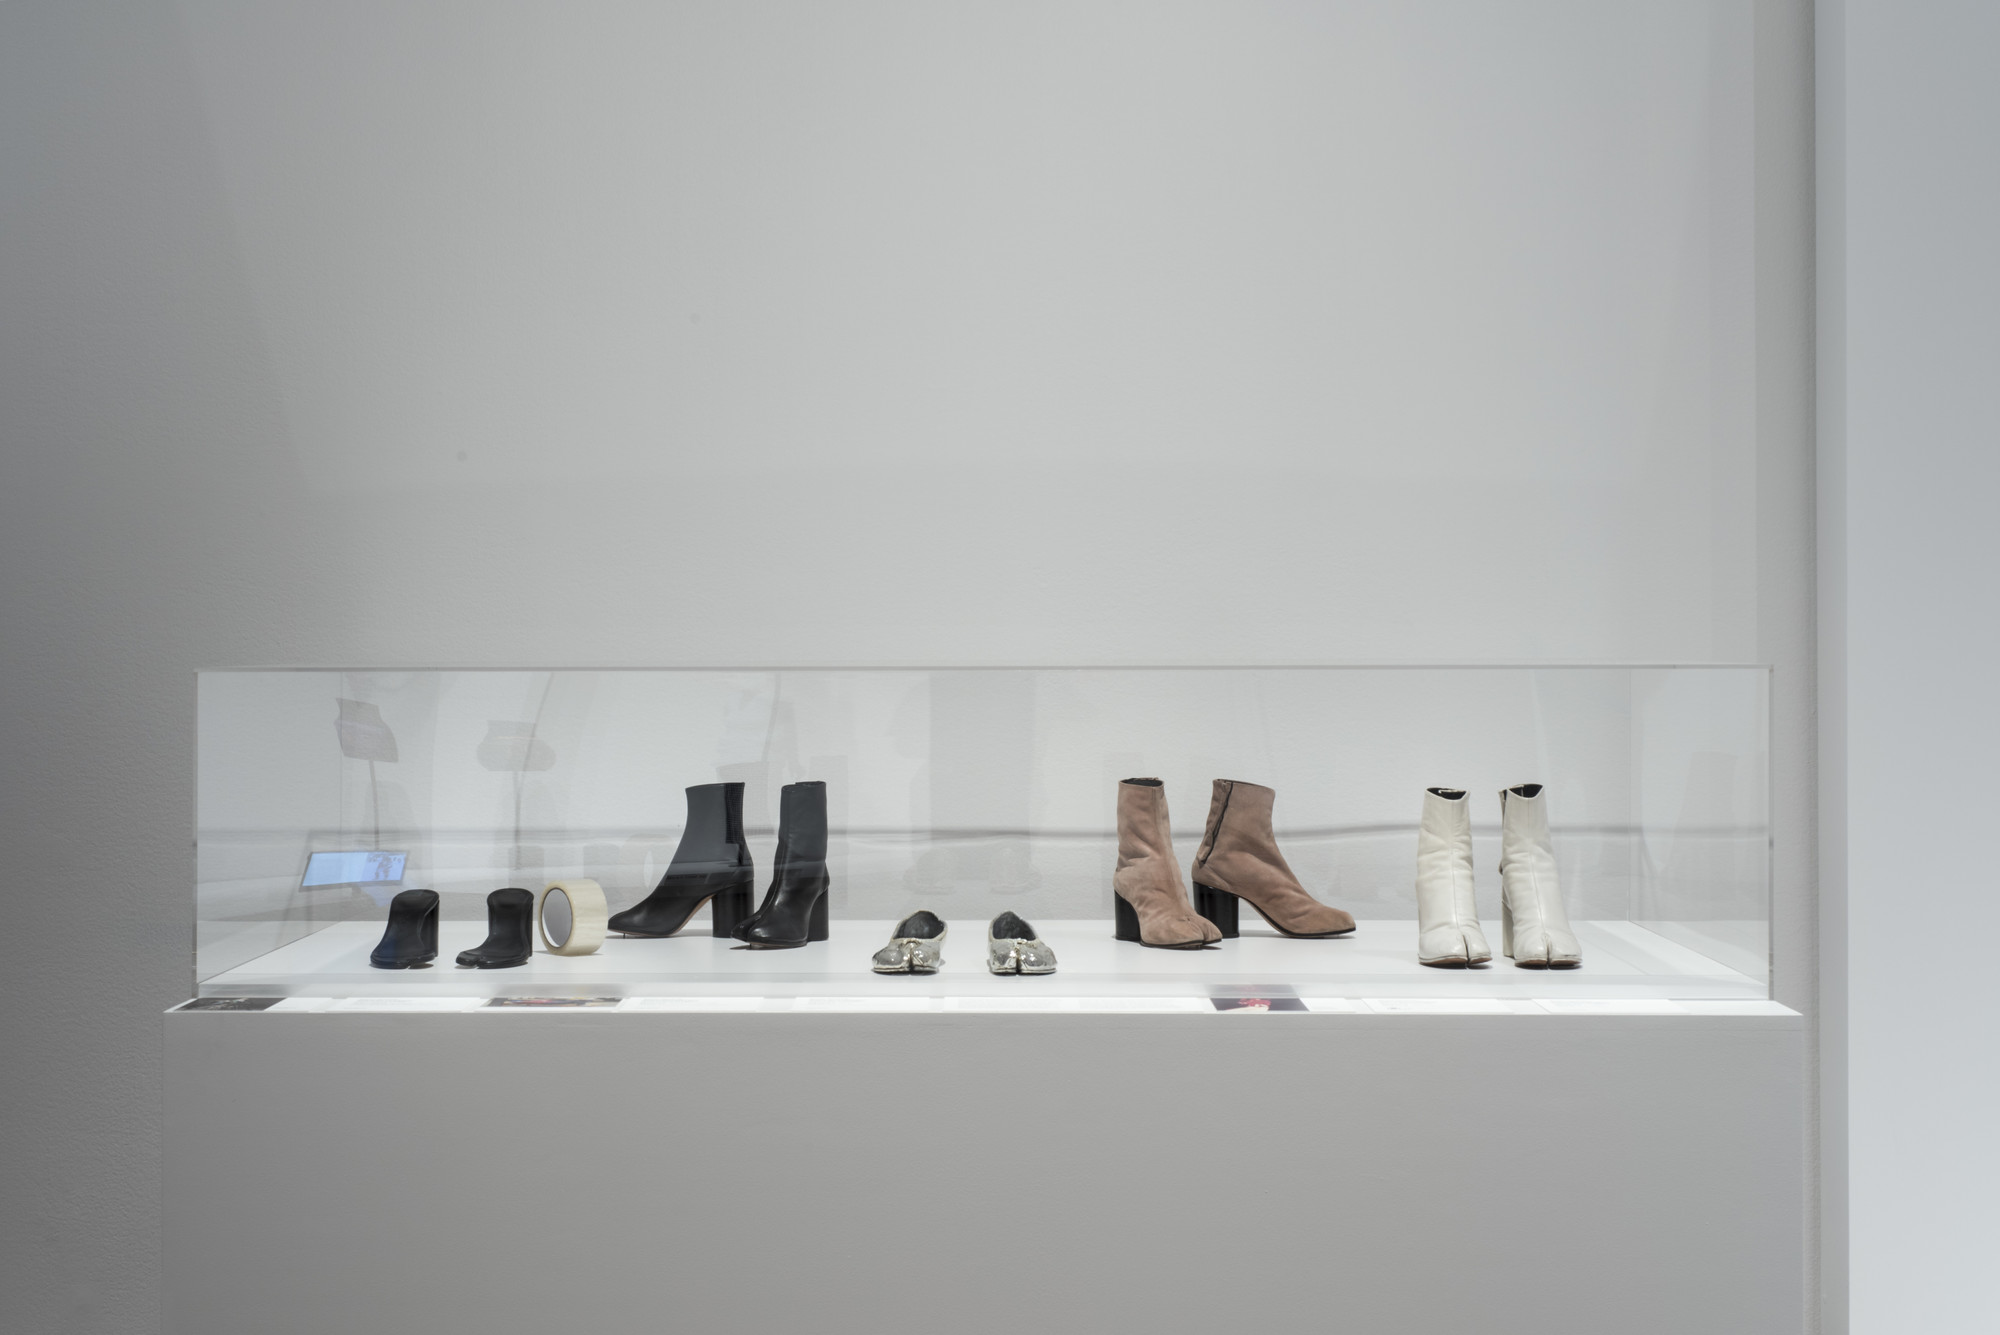 Martin Margiela (Belgian, born 1957). Maison Martin Margiela (later Maison Margiela) (France, founded 1988). Boots. 1990–99. Leather. Sandals. Spring/summer 1996. Leather and adhesive tape. Boots. Spring/summer 1989. Suede. Shoes. 2008. Leather. Fashion Museum, Province of Antwerp. Boots. c. 1990. Leather. Lent by Linda Loppa. Image taken during installation of _Items: Is Fashion Modern?_